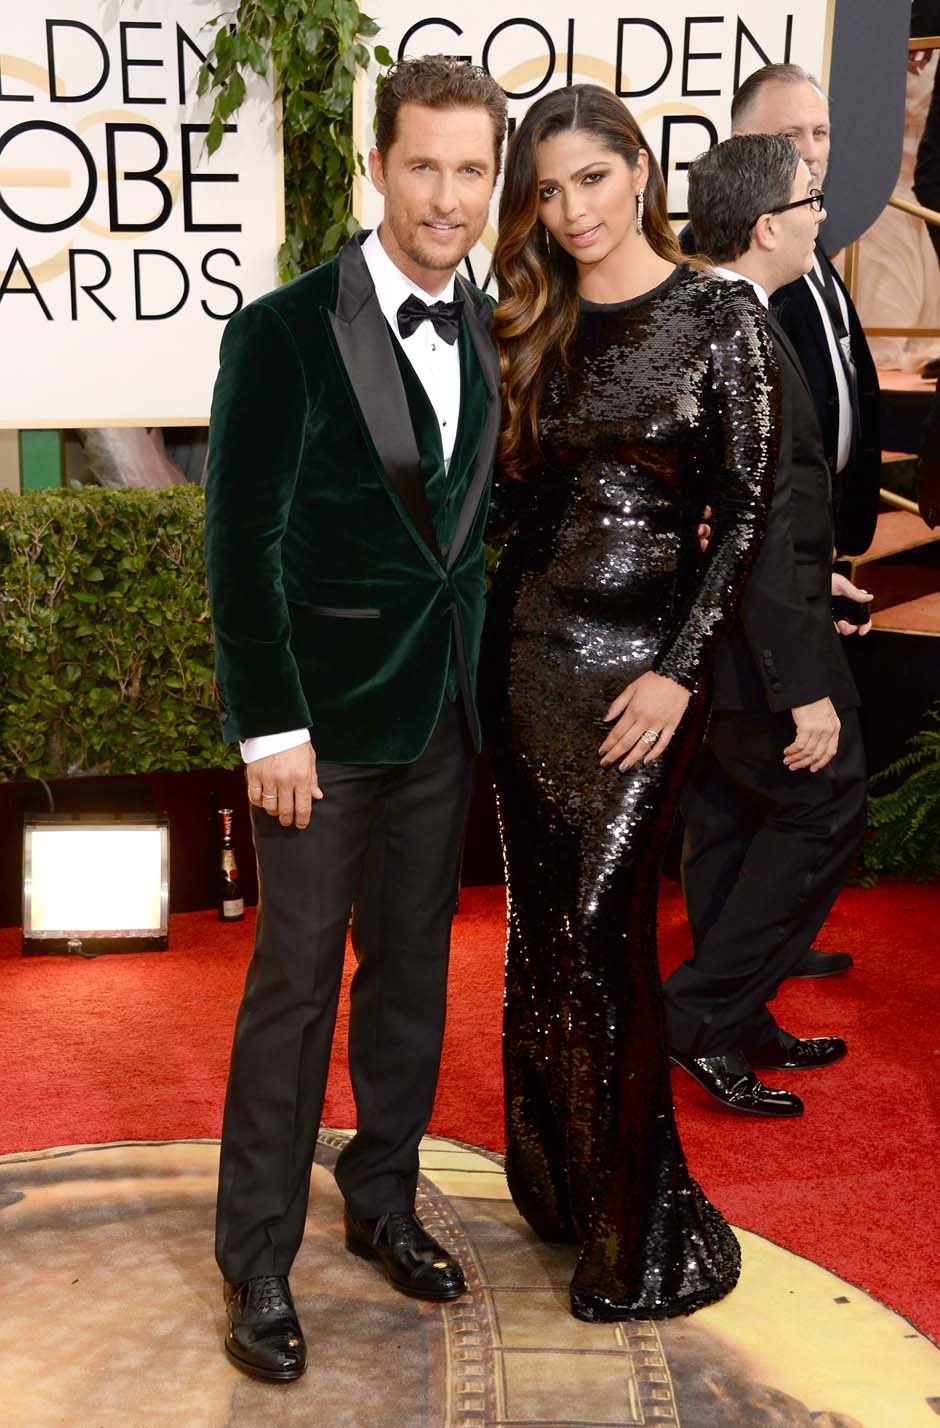 MathewMcConaughey and wife Camila Alves look fabulous in Dior.